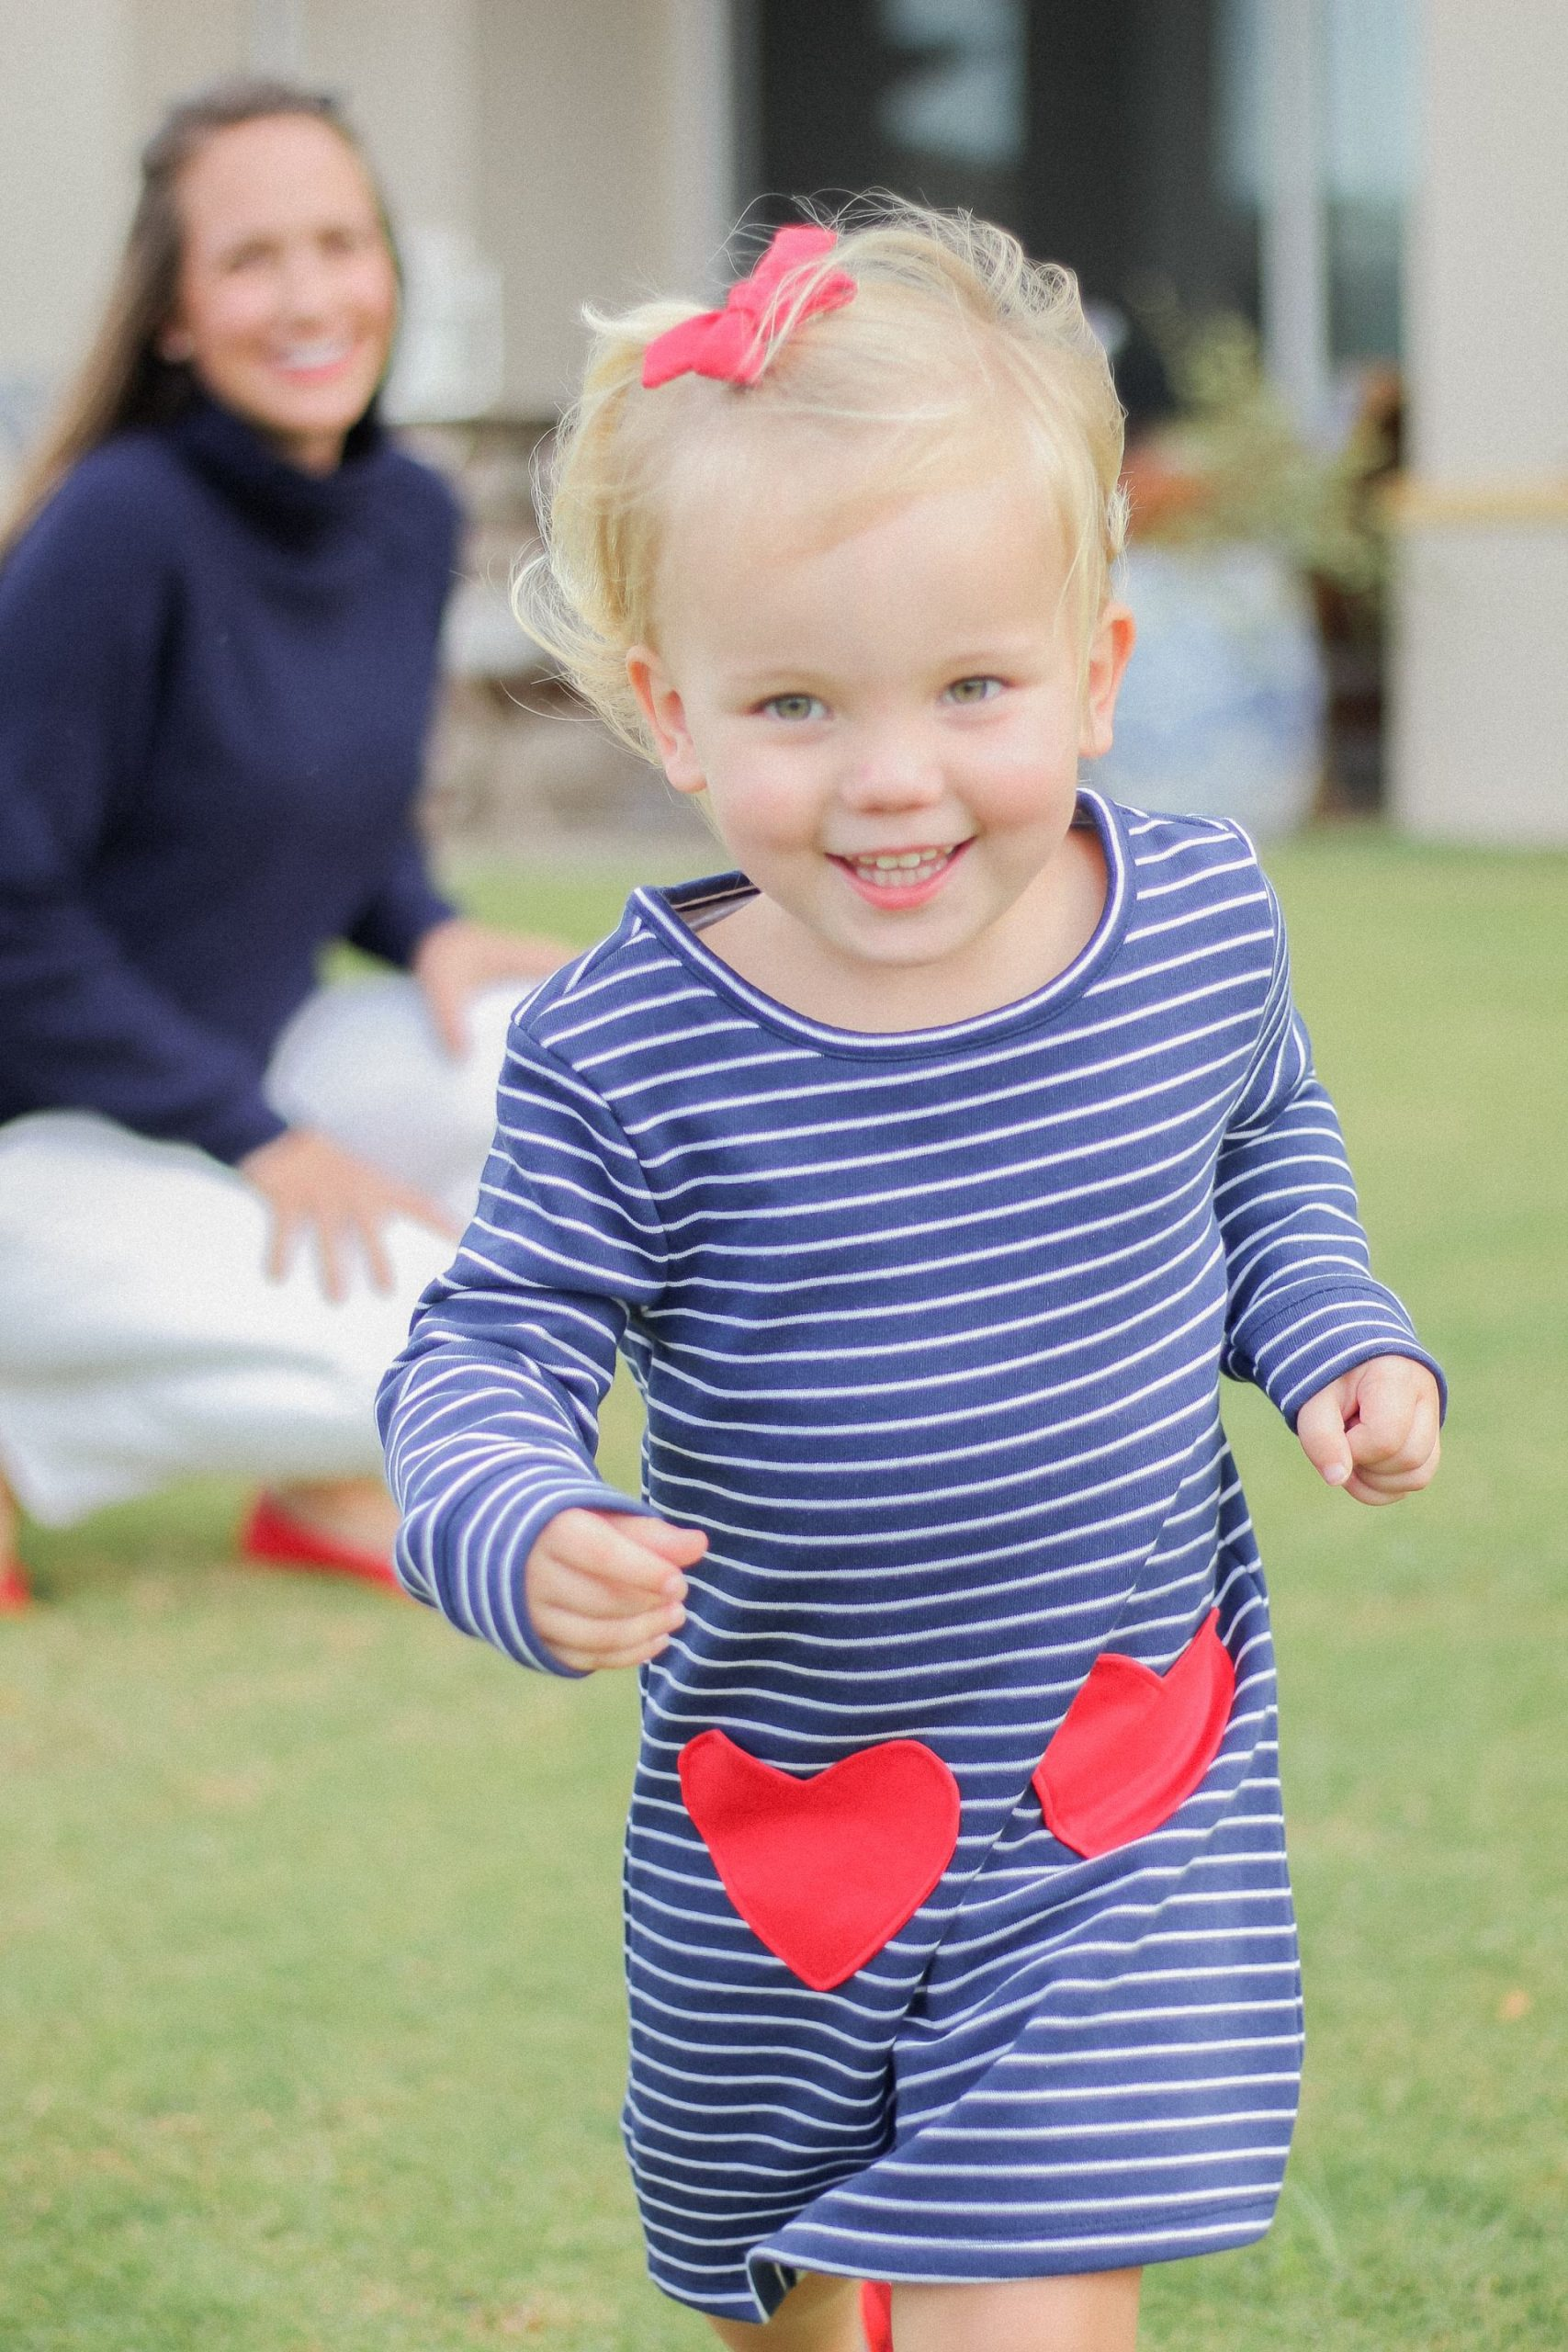 valentines day outfits - heart sweater - chicwish heart sweater - navy sweater with heart elbow patches - stripes and hearts - toddler valentines day outfit - mommy and me heart outfits - nashville bow co - preppy style - blue and white outfit - old navy valentines